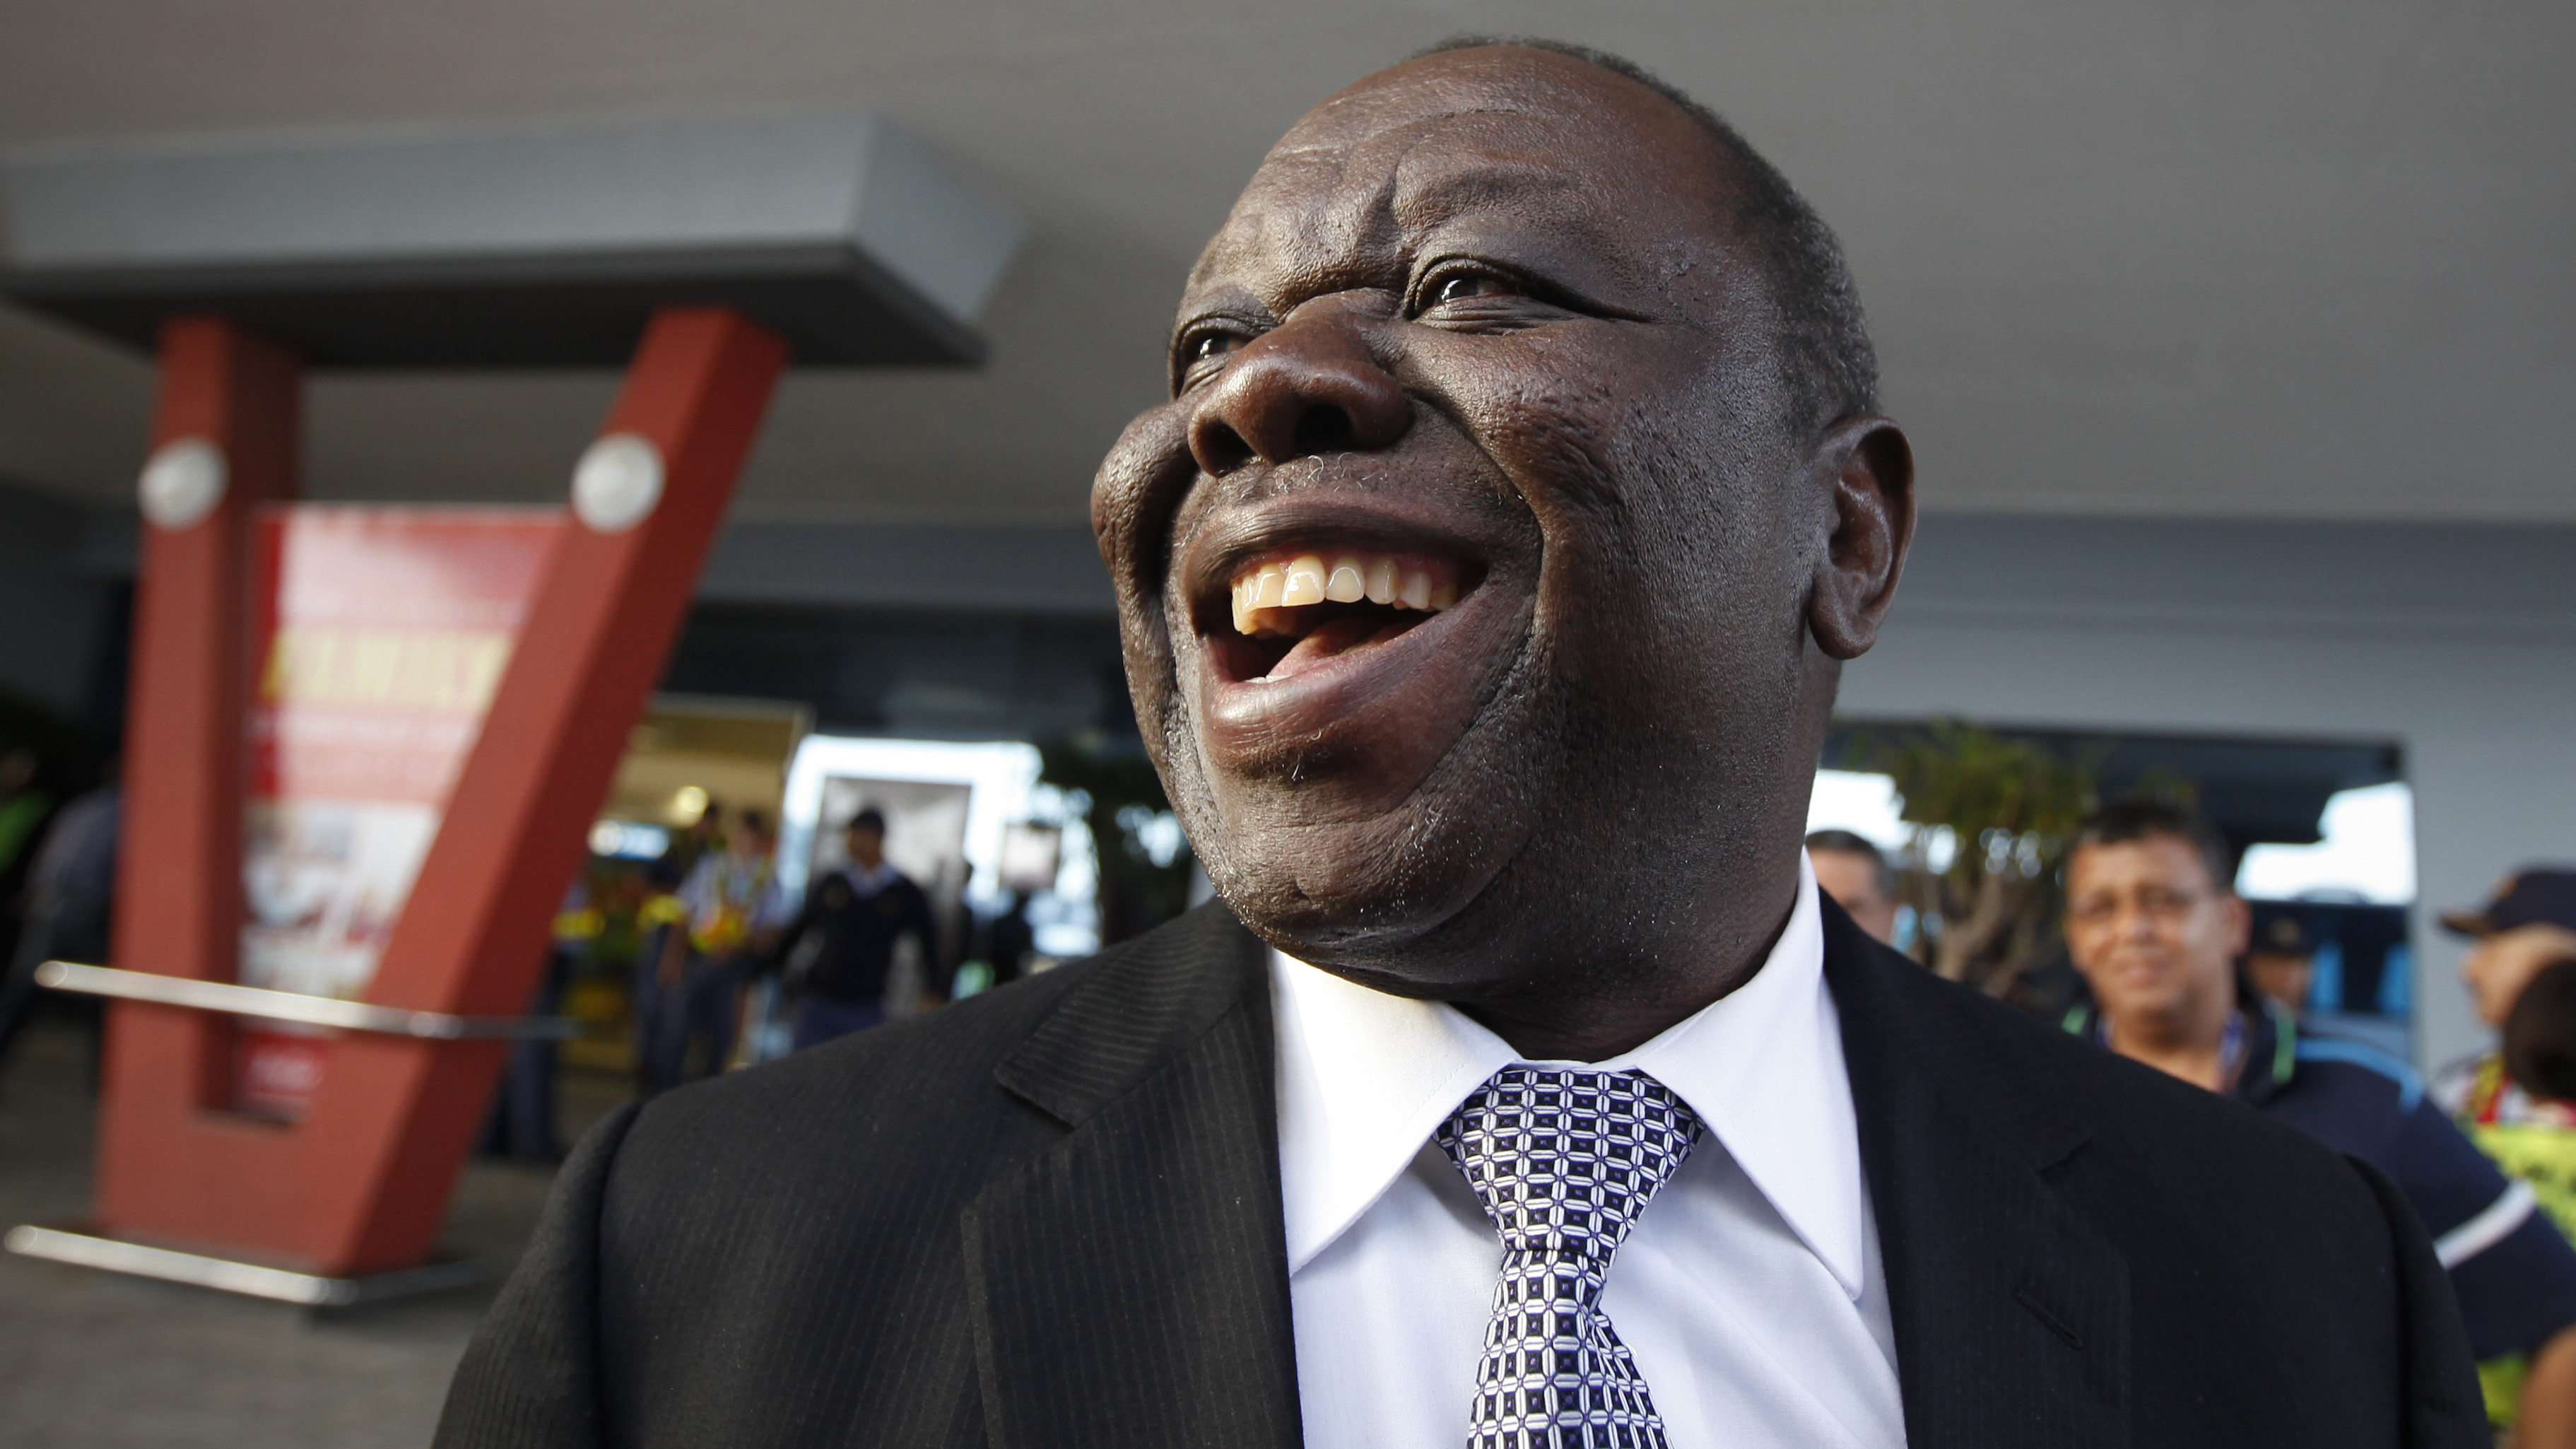 Prime Minister of Zimbabwe Morgan Tsvangirai stands outside the East London airport in Eastern Cape, South Africa, after after arriving to attend the late former South African President Nelson Mandela's funeral, Saturday, December 14, 2013. (AP Photo/Dai Kurokawa, Pool)